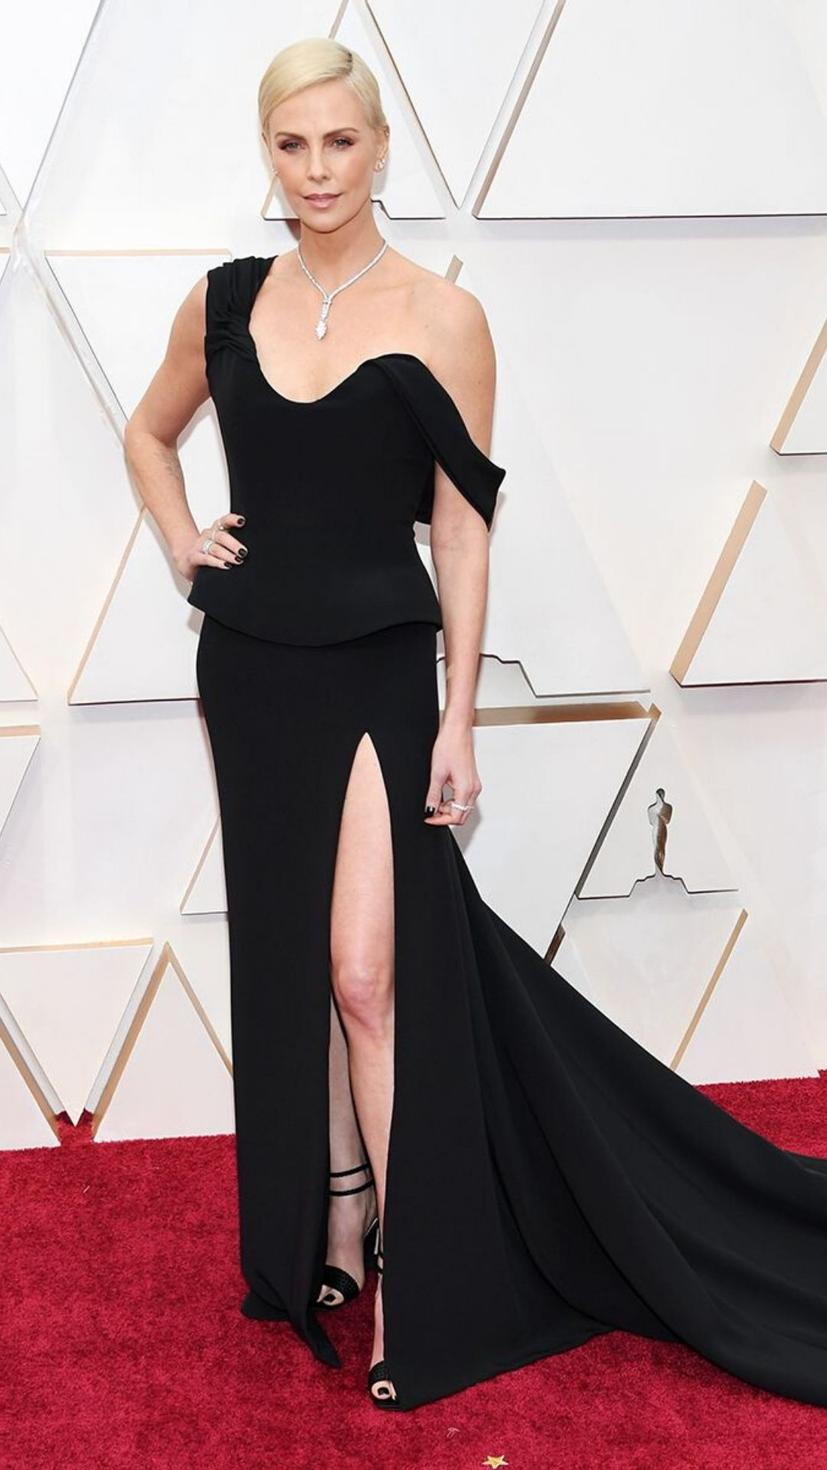 Charlize Theron wears a gown from Dior and jewellery from Tiffany & Co.